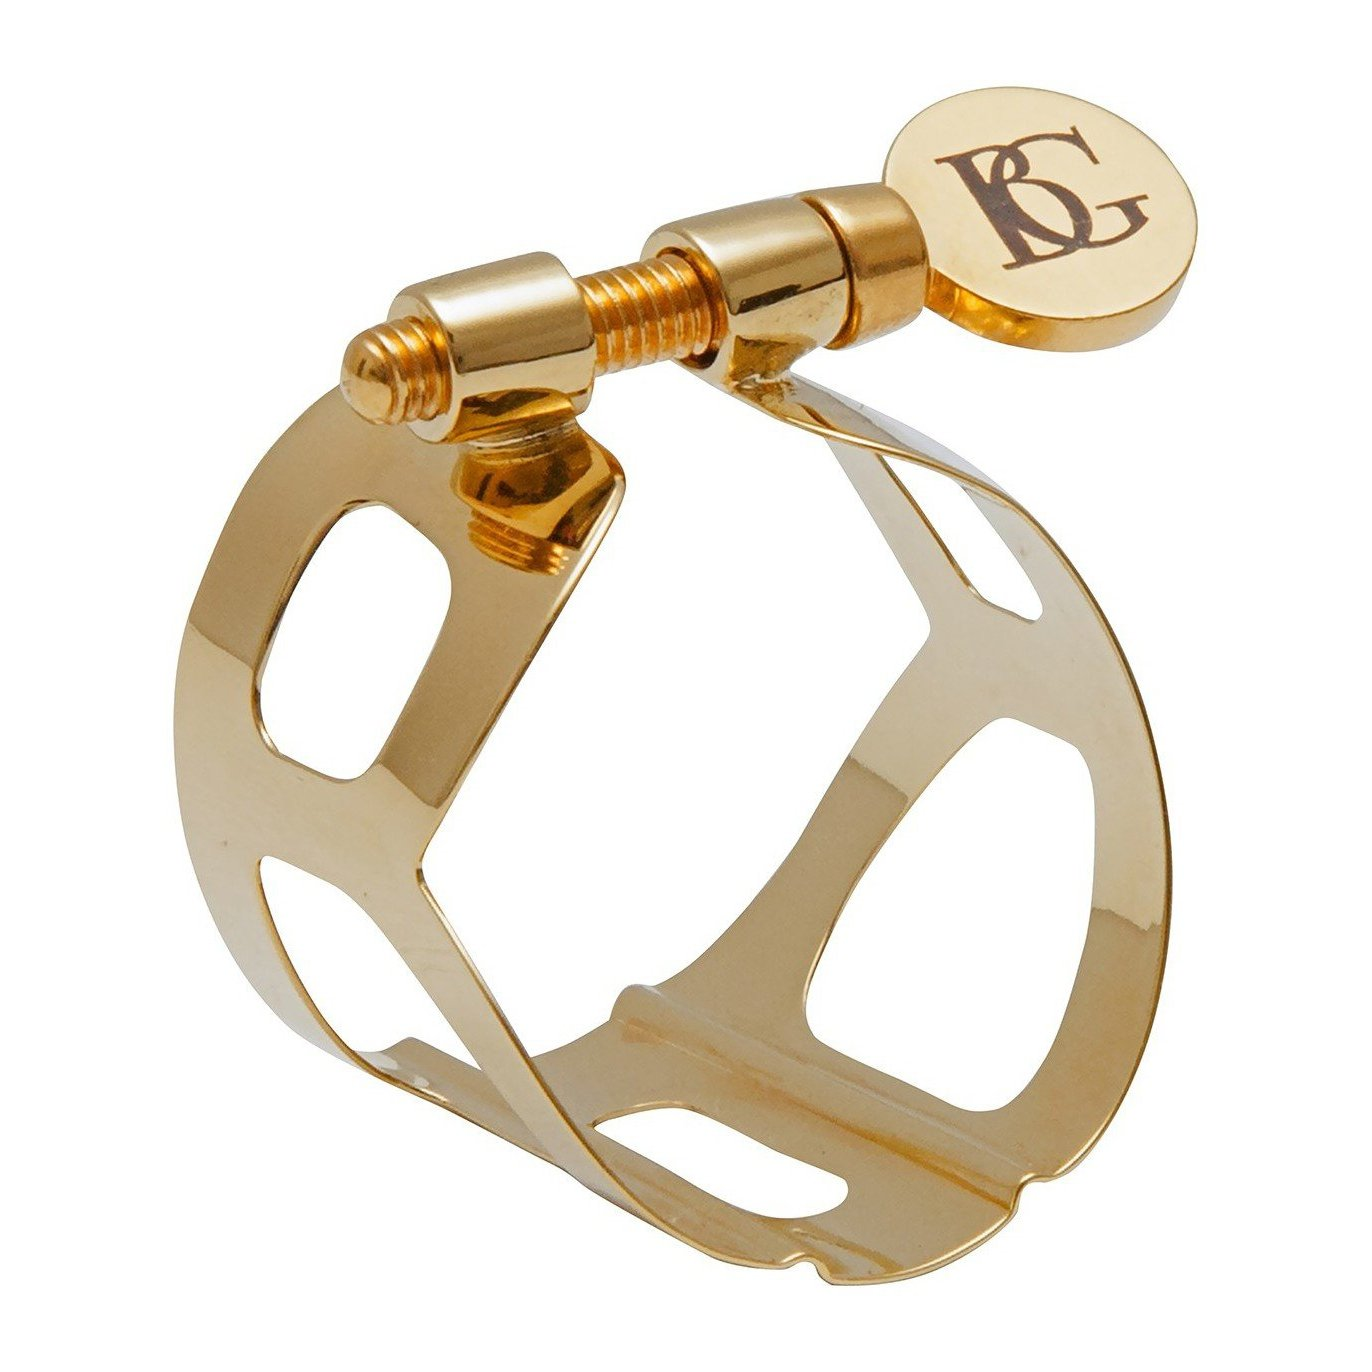 BG France - Tradition Ligatures for Alto Saxophone-Ligature-BG France-Gold Lacquered-Music Elements